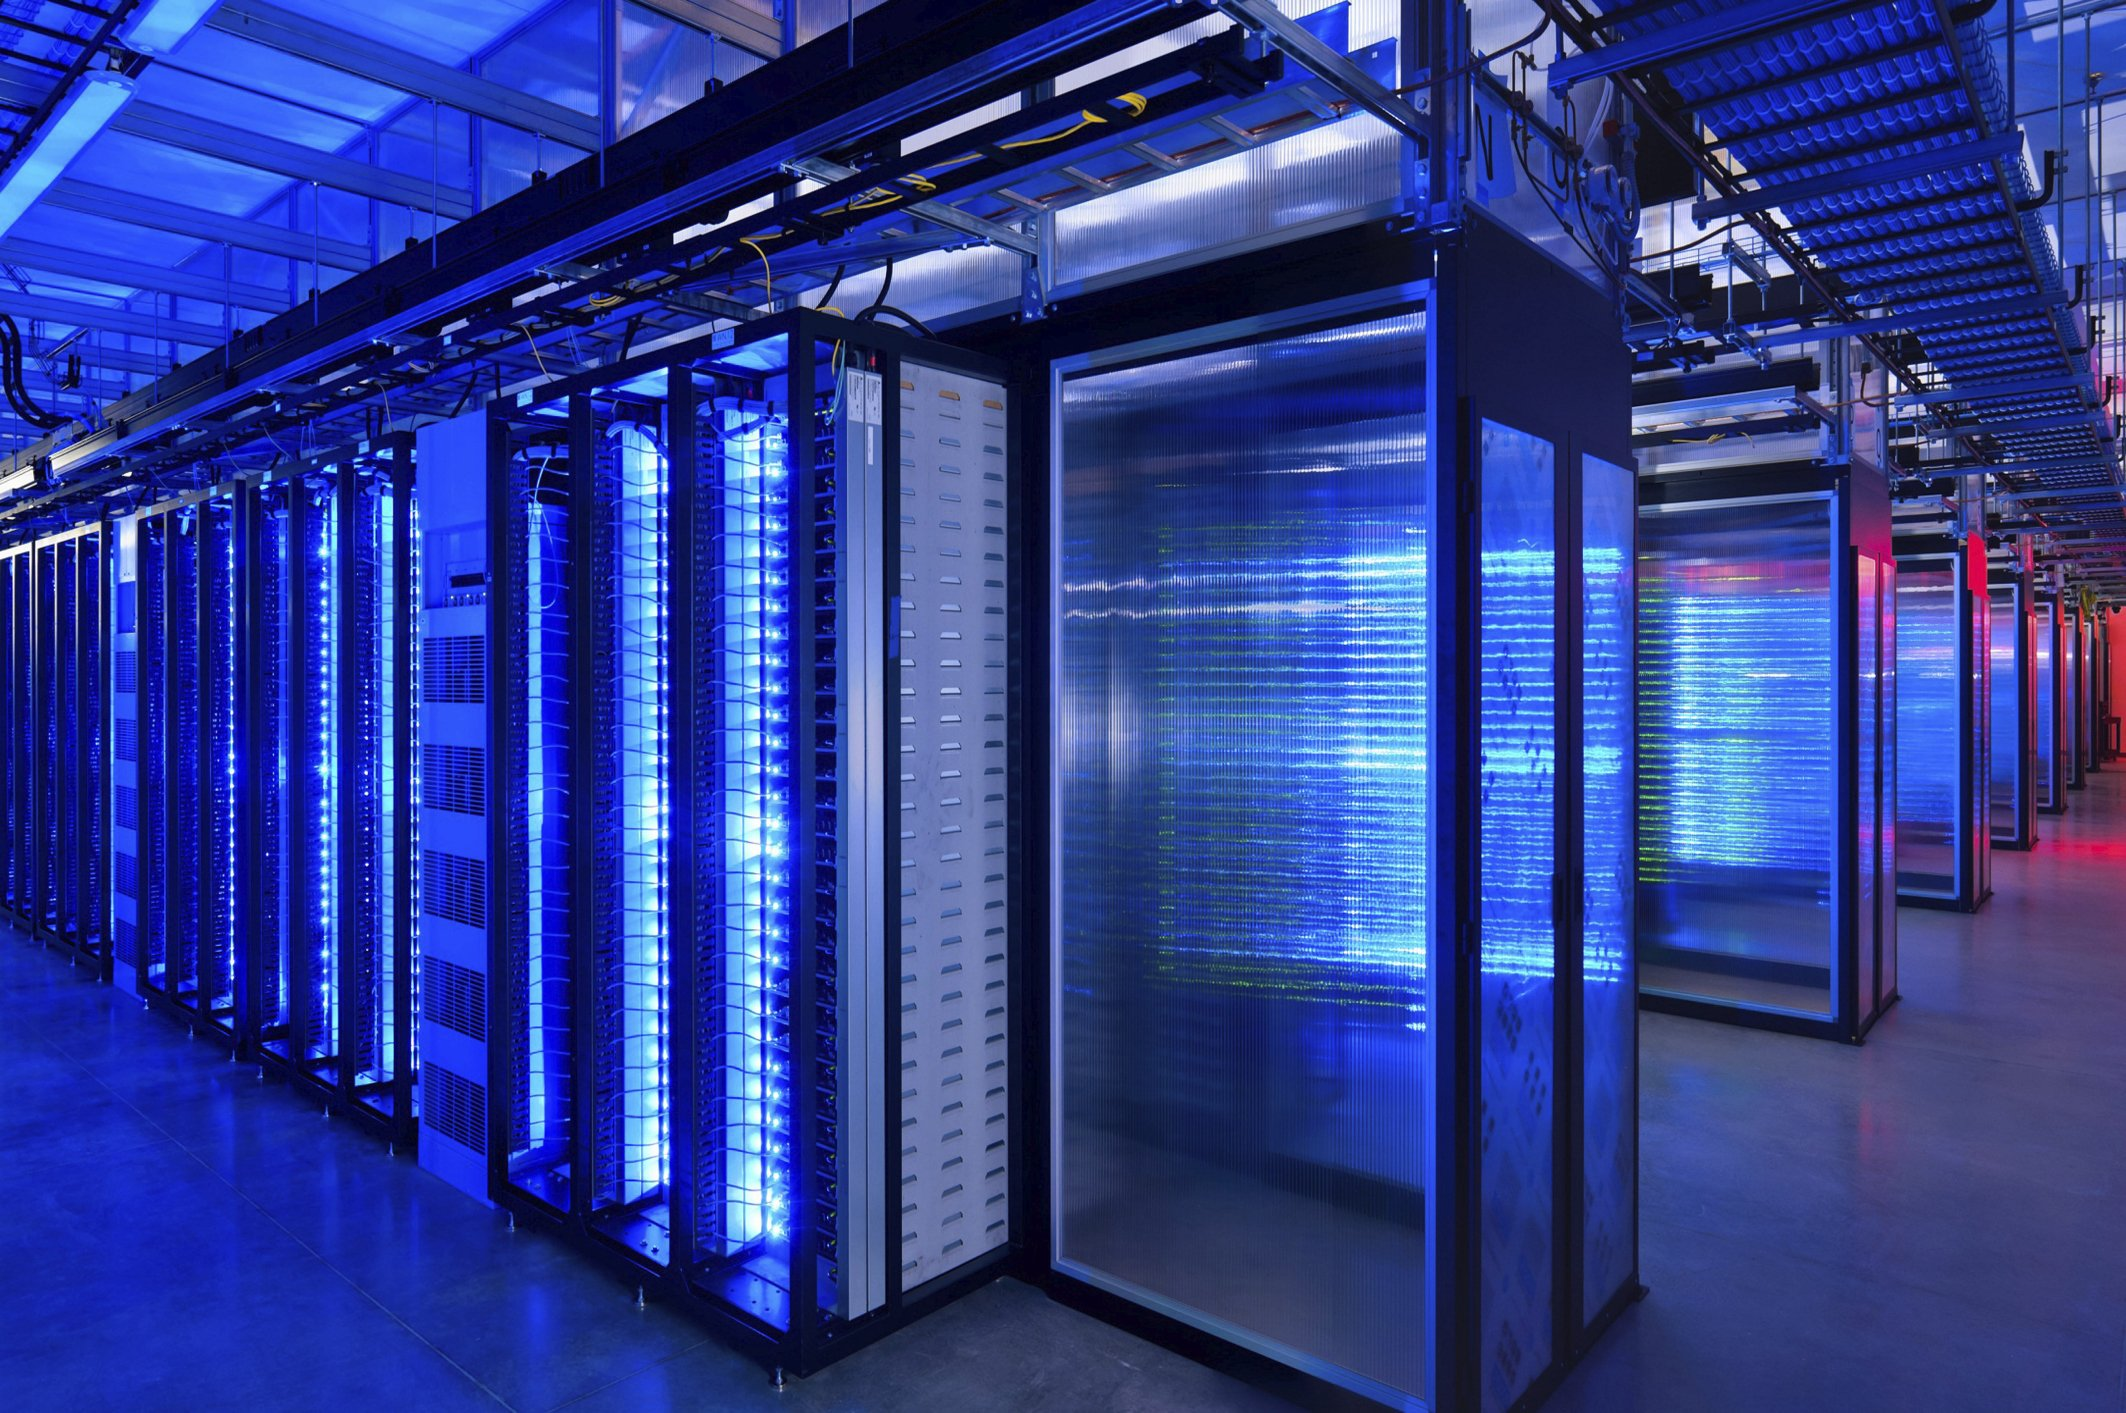 India losing out in race as regional data center hub - DCD